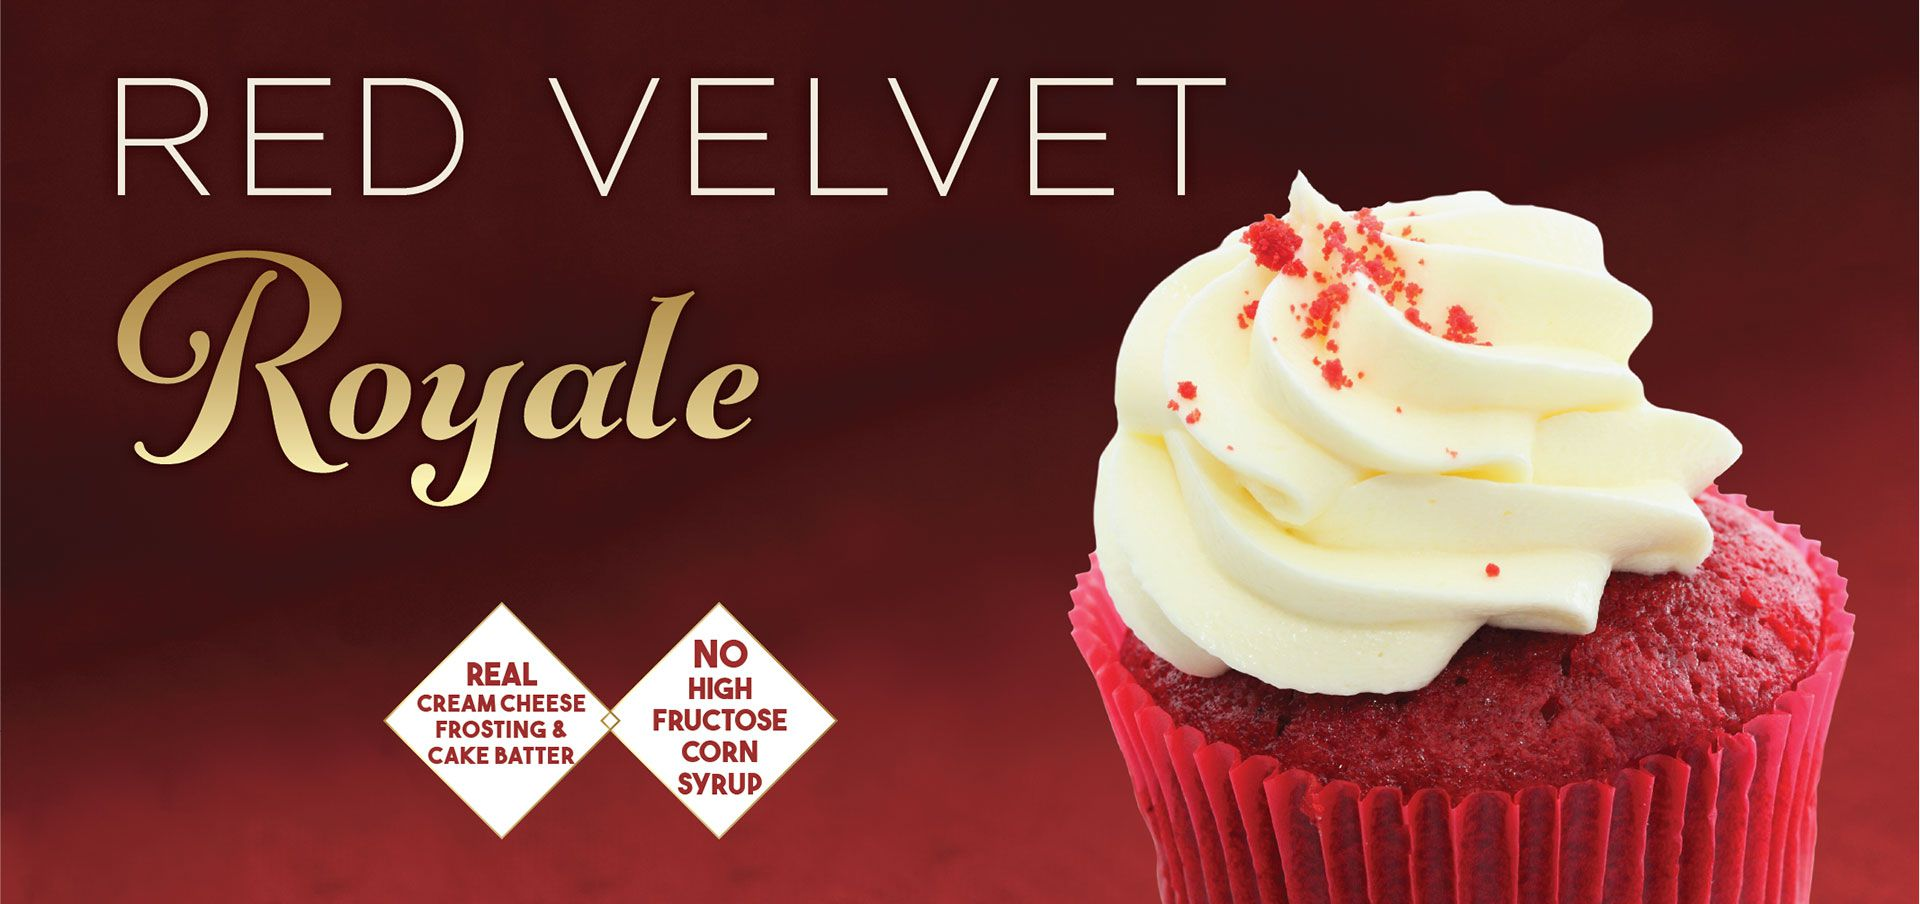 red velvet royale label image